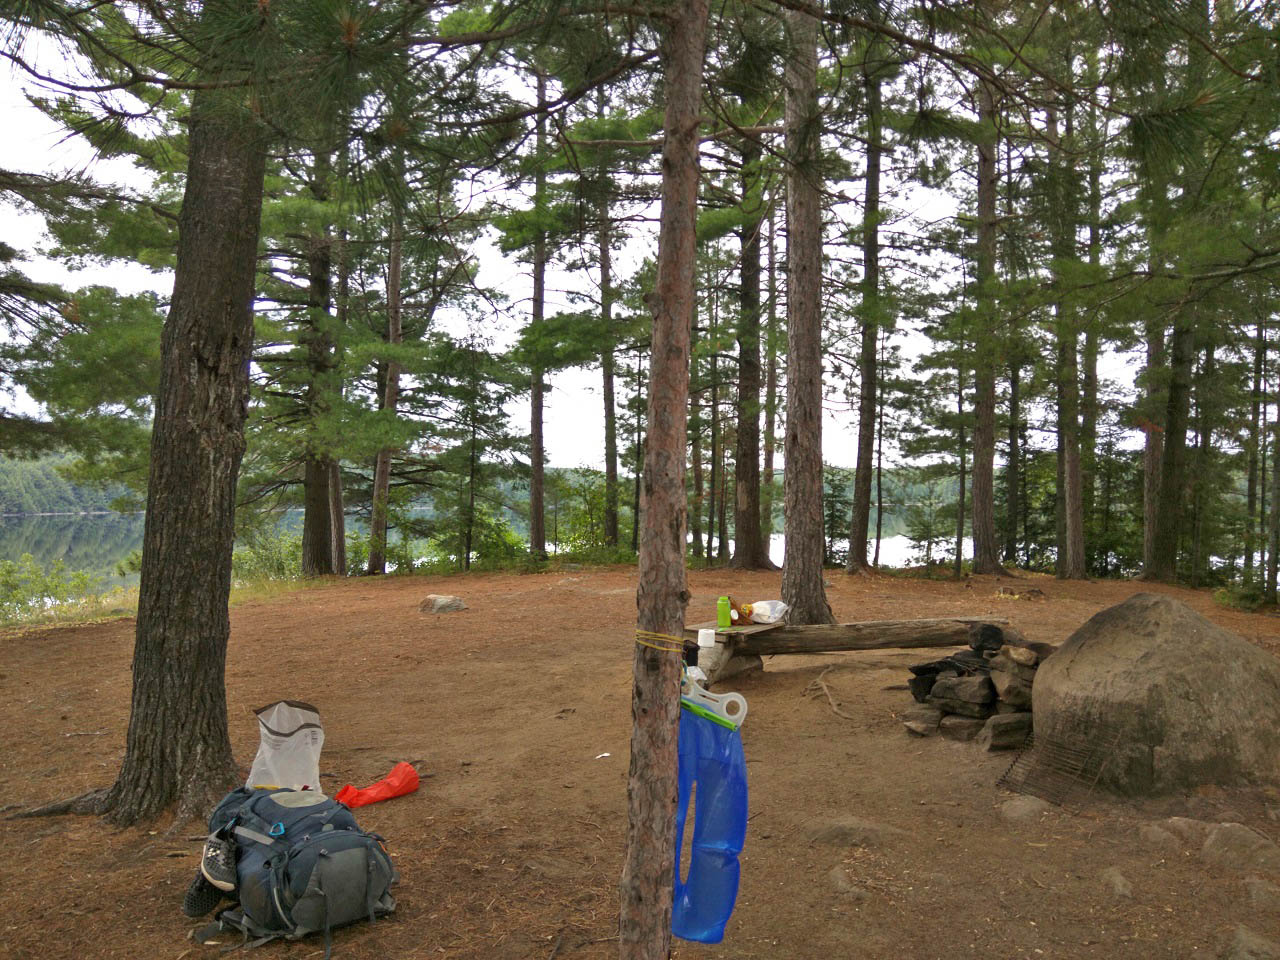 http://www.algonquinadventures.com/PCI/lakes/Manitou/ManitouCS11/pp157.jpg